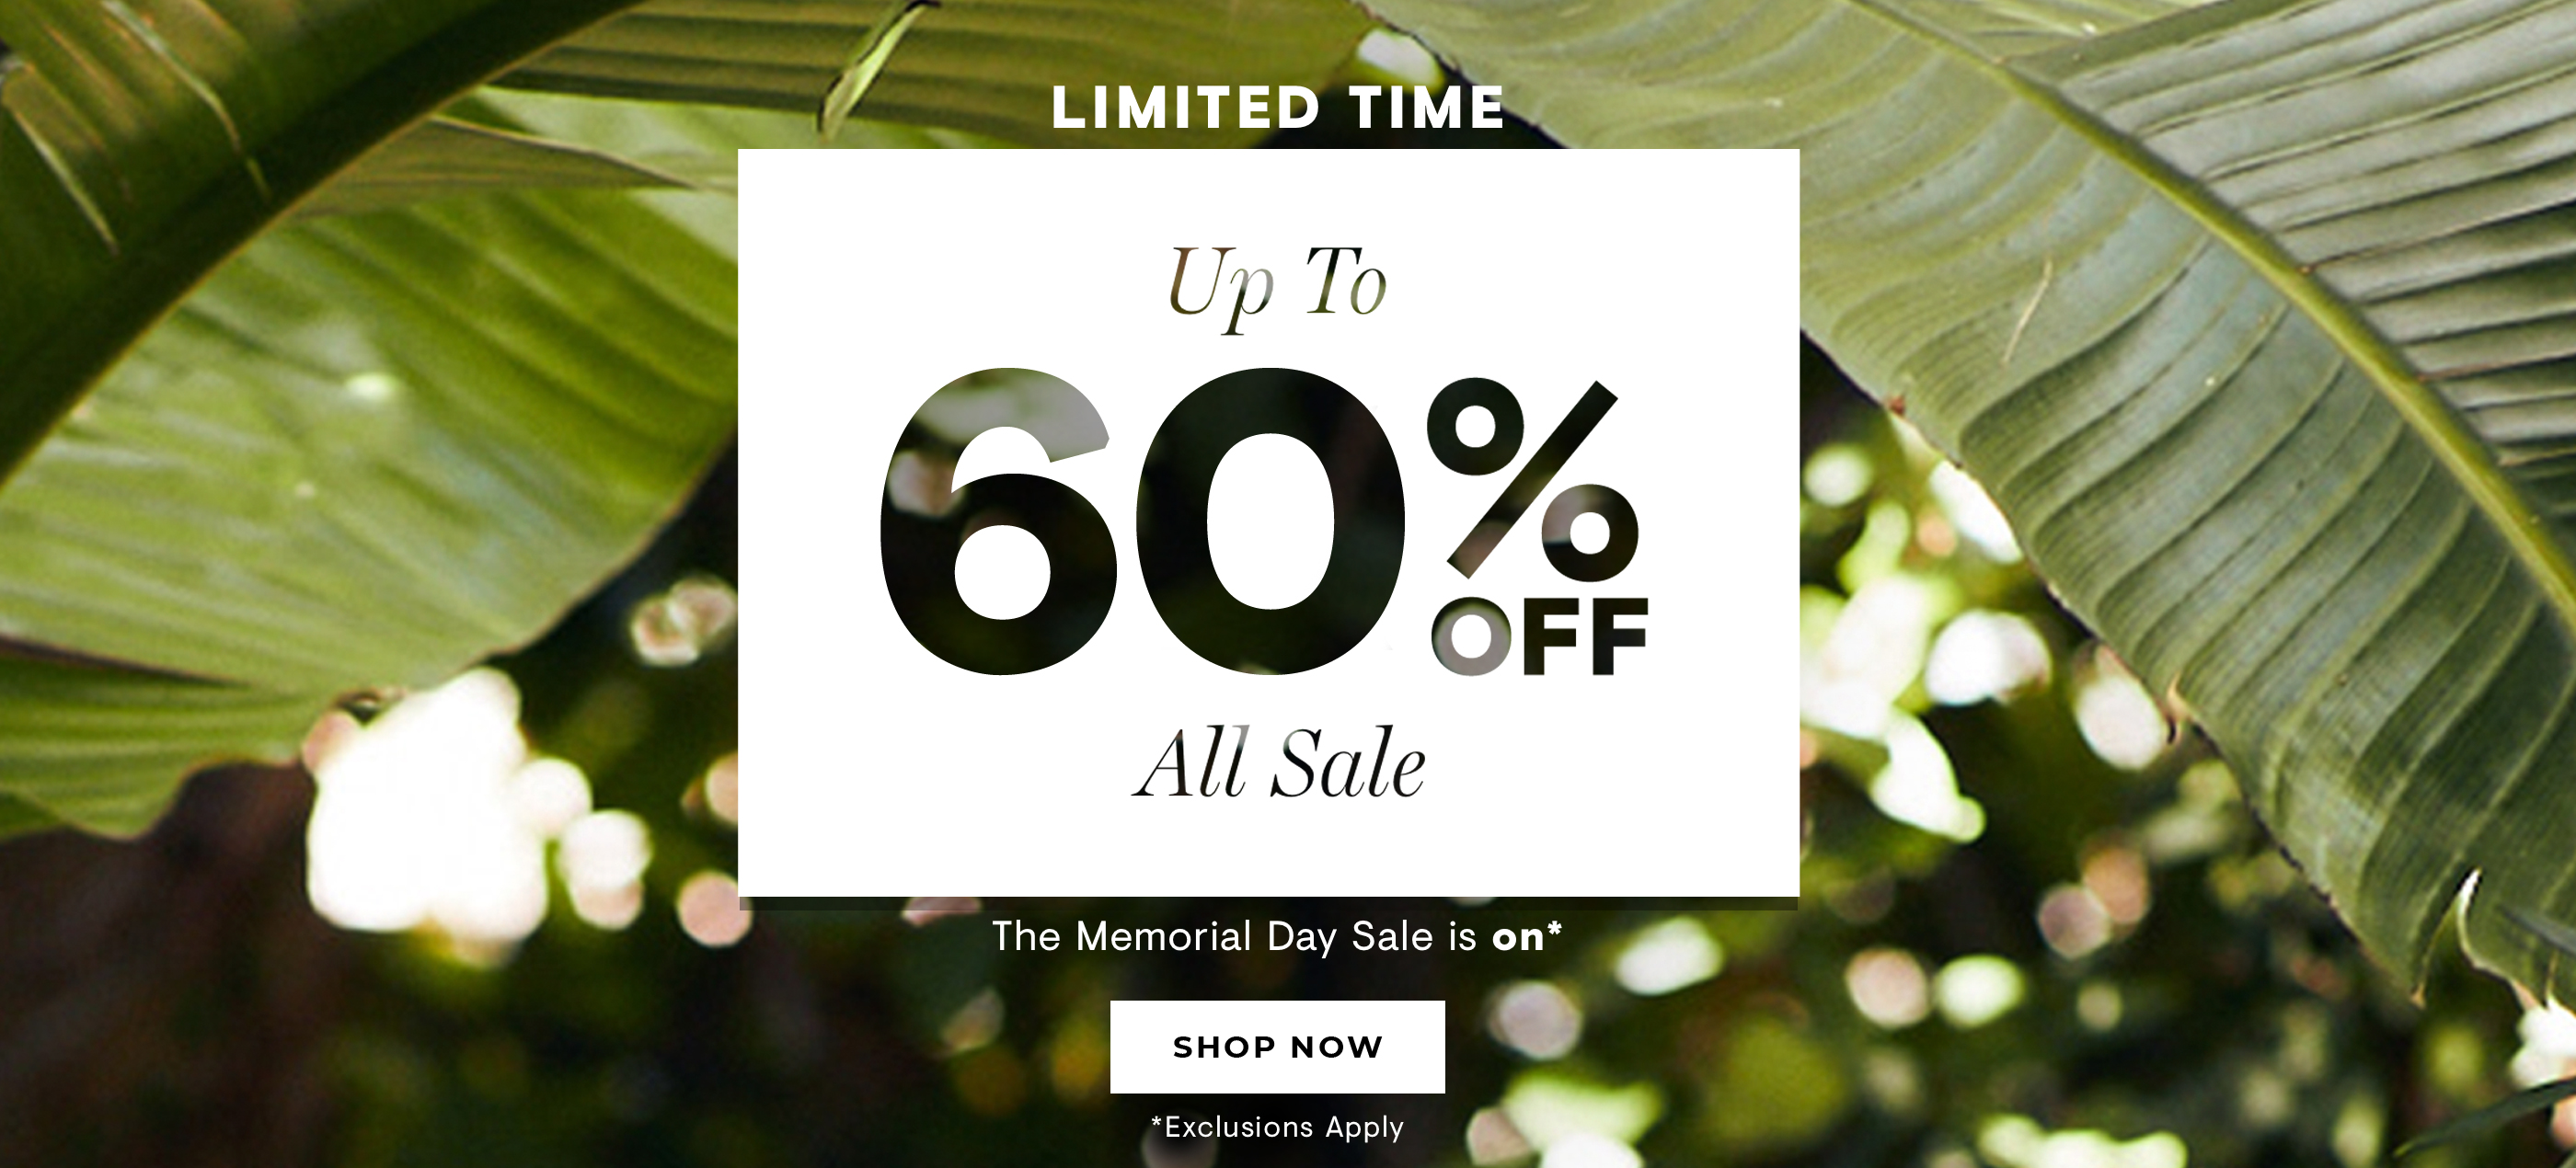 The Memorial Day Sale